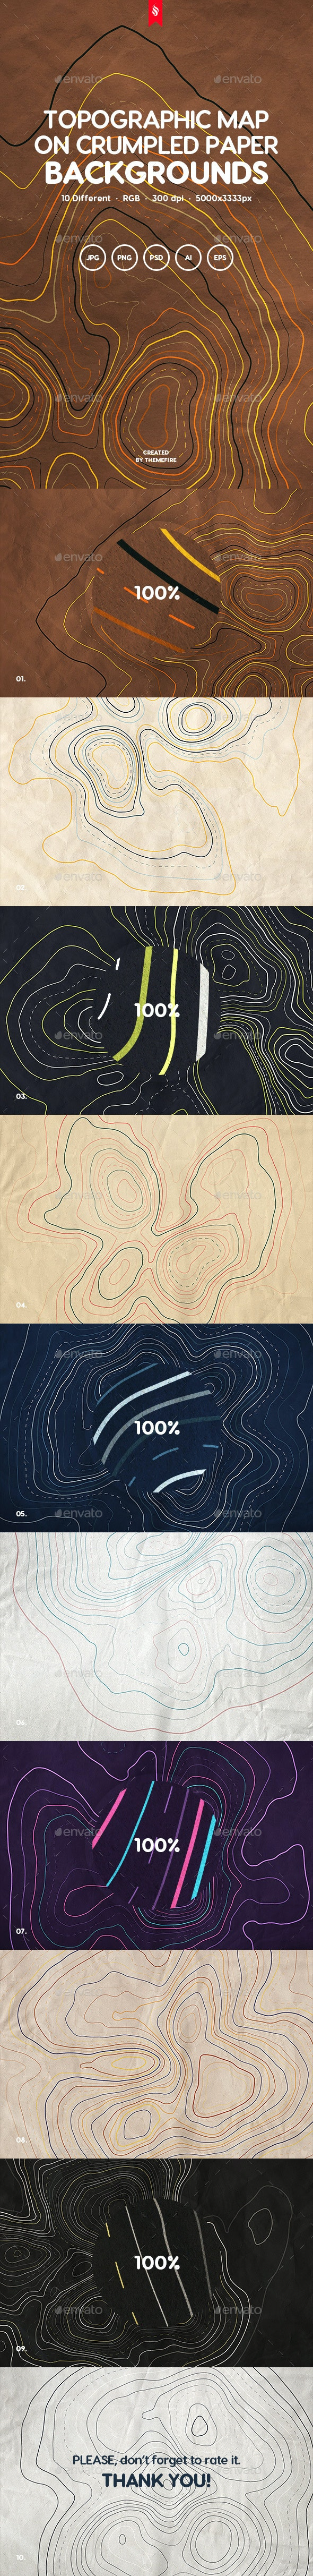 Topographic Elevation Maps on Crumpled Paper Backgrounds - Backgrounds Graphics